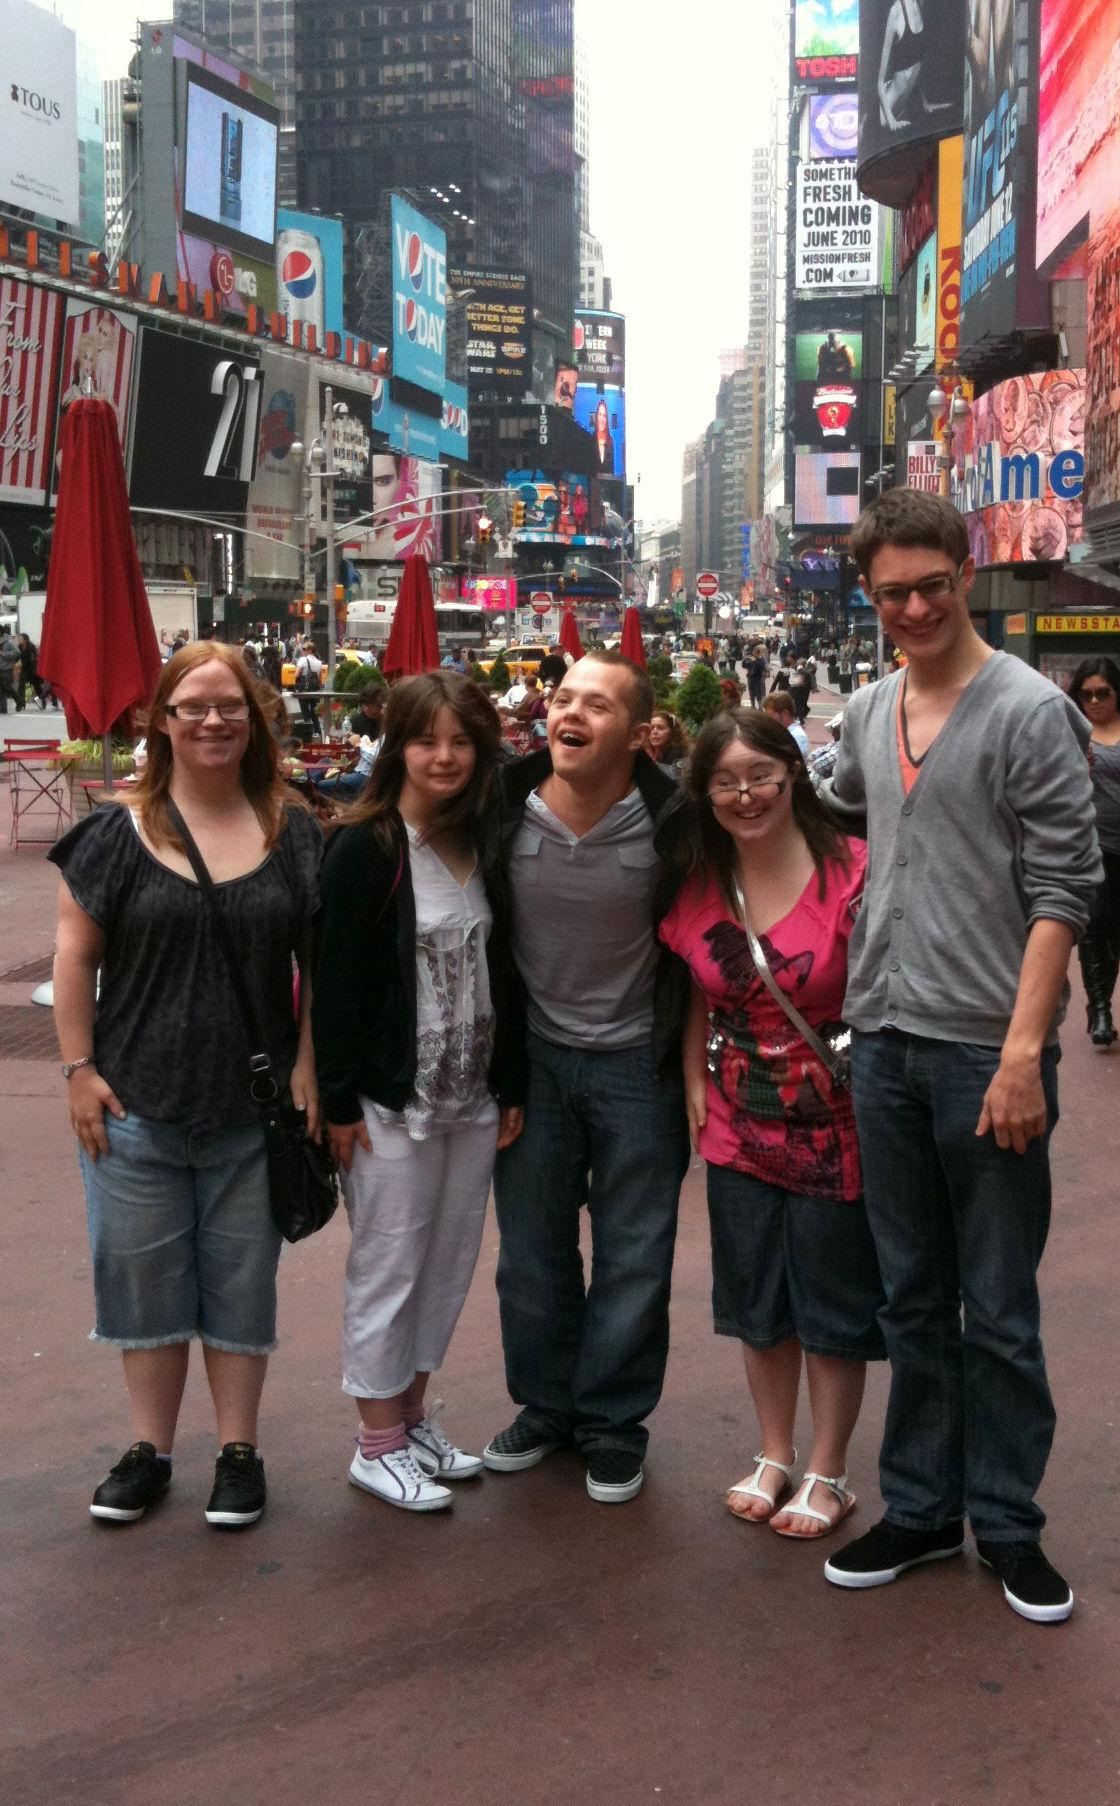 Lucy, Megan, Sam, Hilly and Lewis in Times Square NYC.